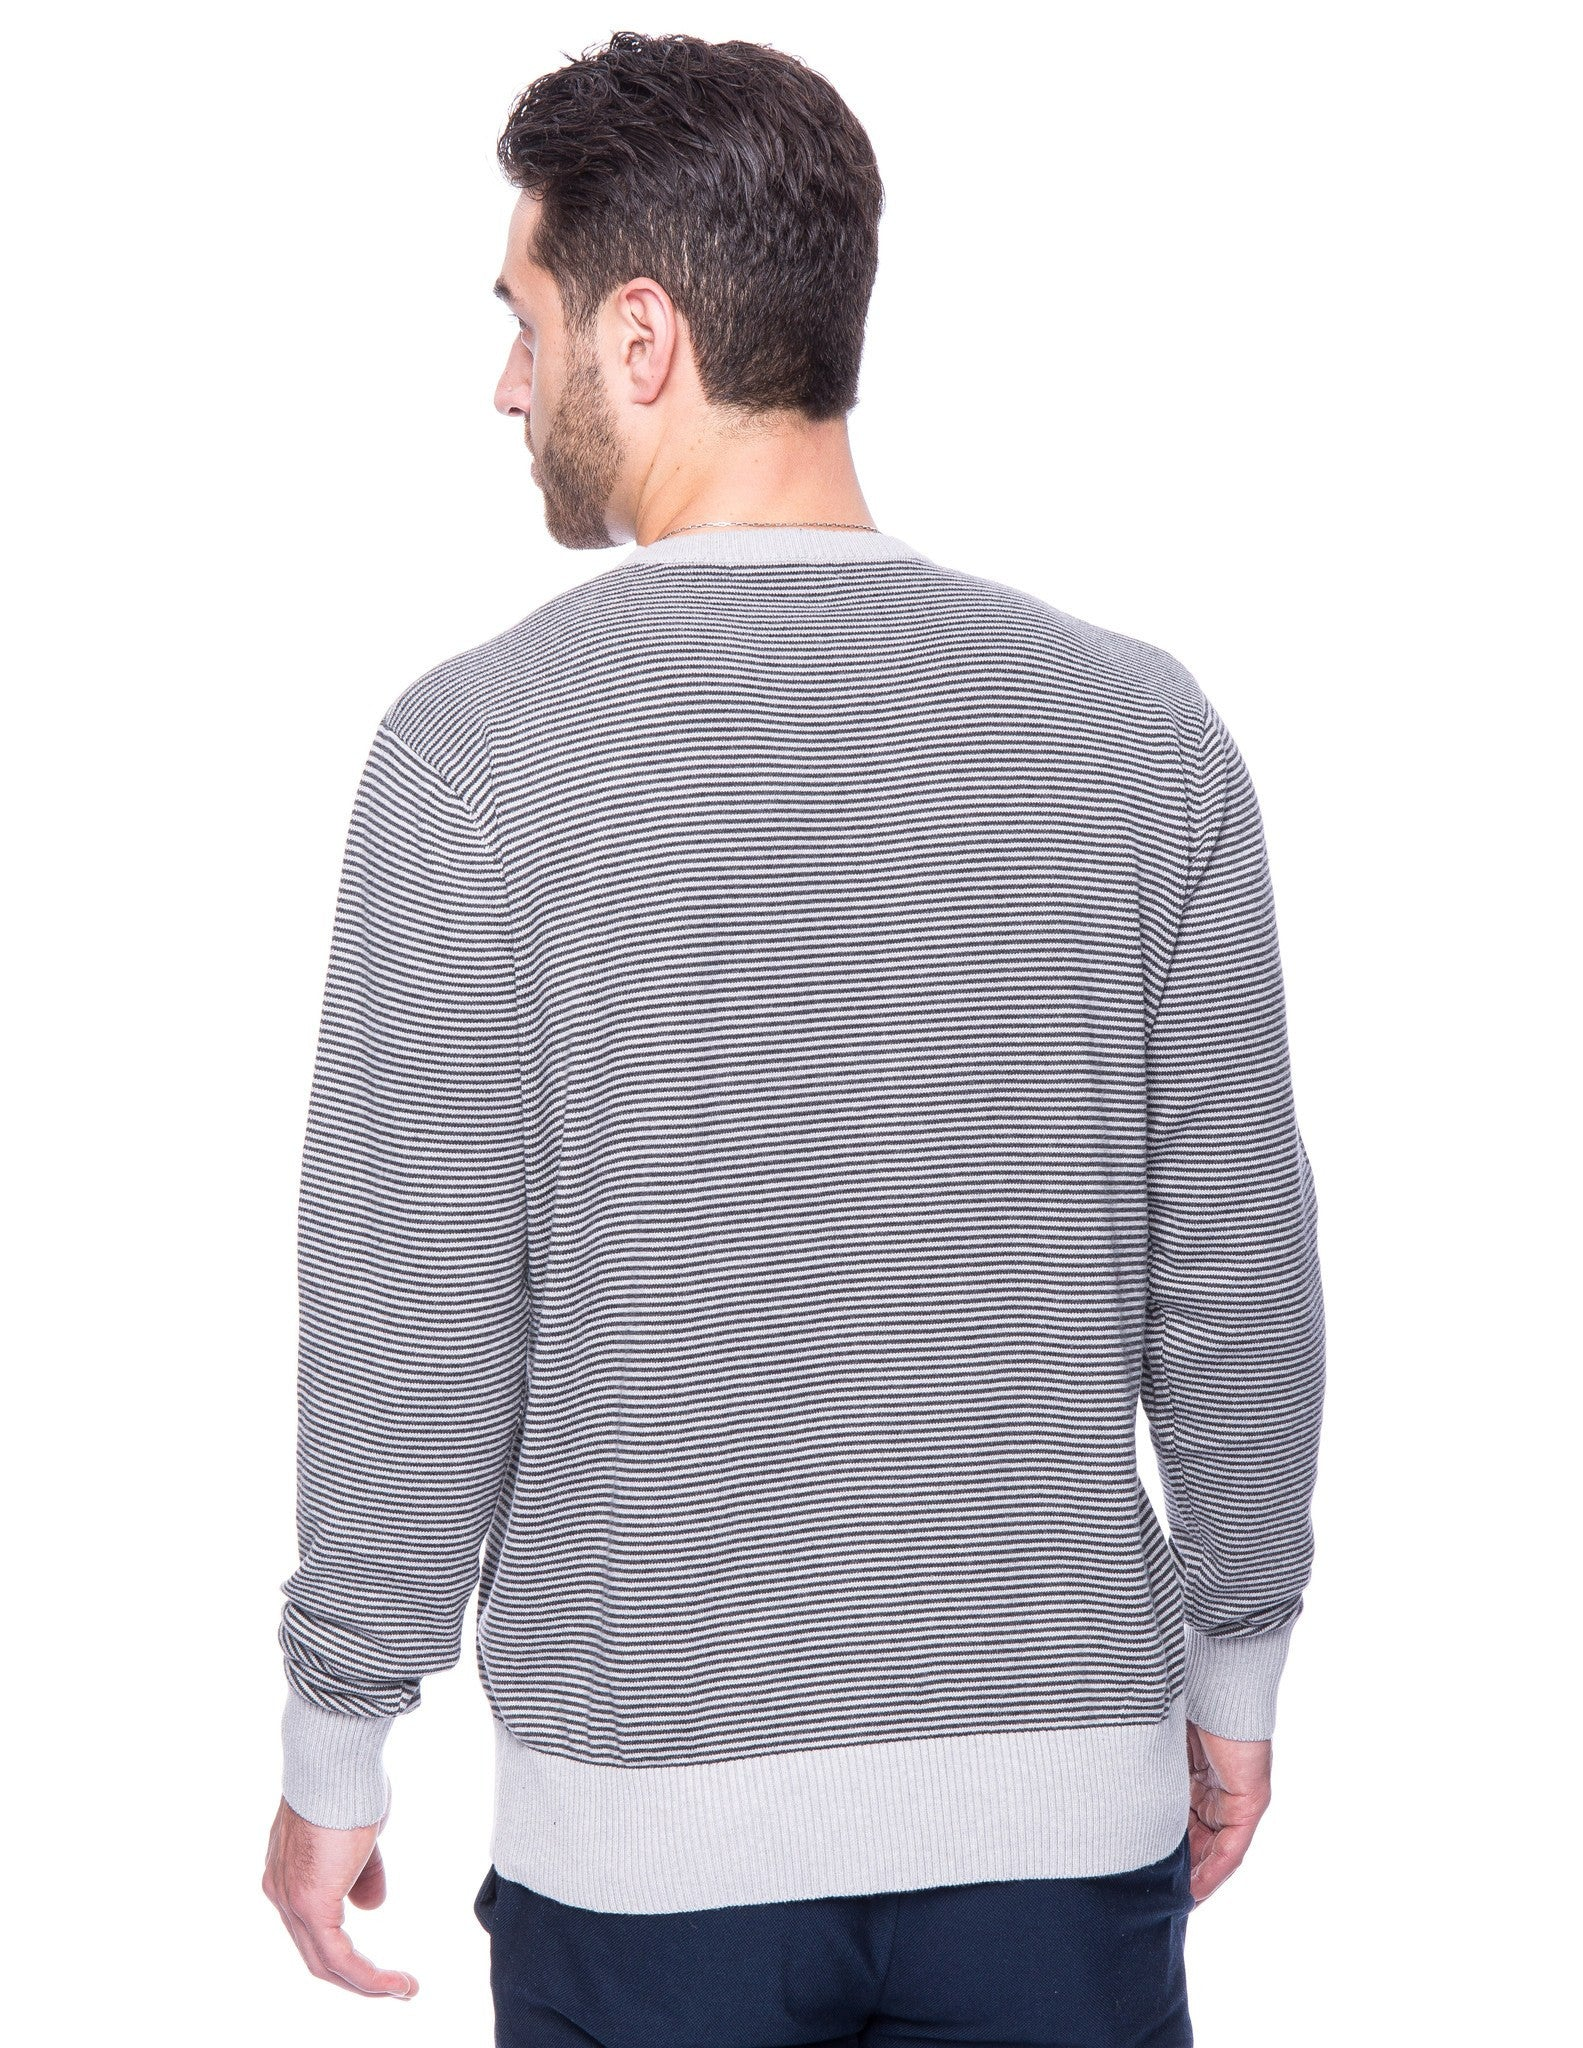 Stripes Heather Grey/Charcoal